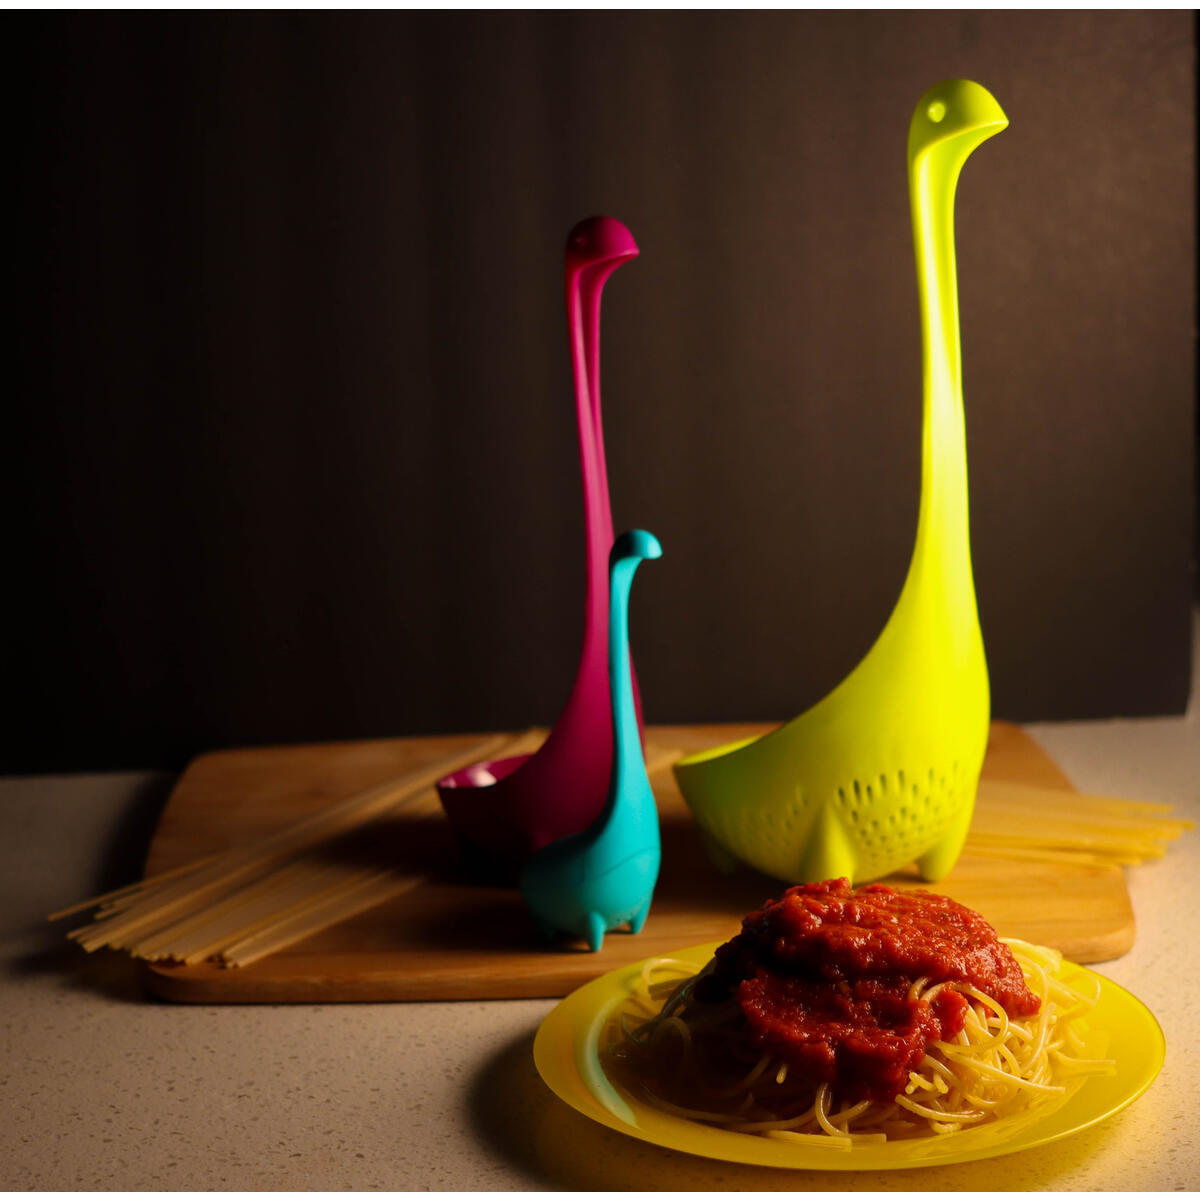 Ingeniuso Loch Ness Ladle Dinosaur Spoon |Dino Handle Scoop | Loch Ness Ladle Monster Strainer Colander | Baby Tea Ball Infuser | Spoons Shaped like Dinosaurs | Adorable Gift Set